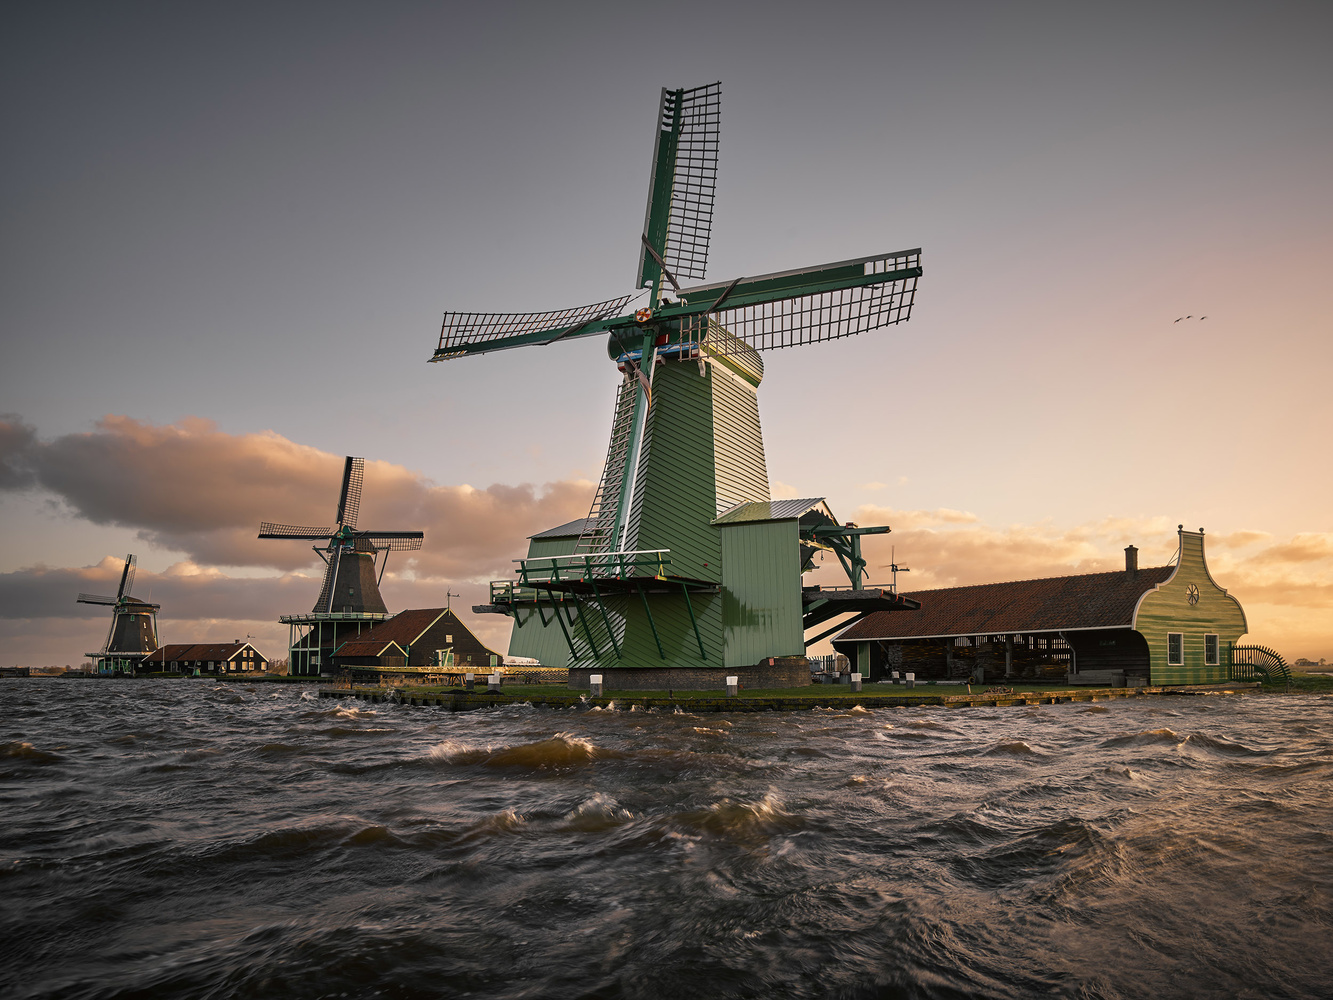 Knights of the windmill, a tribute to the miller's craft by Jeroen Nieuwhuis